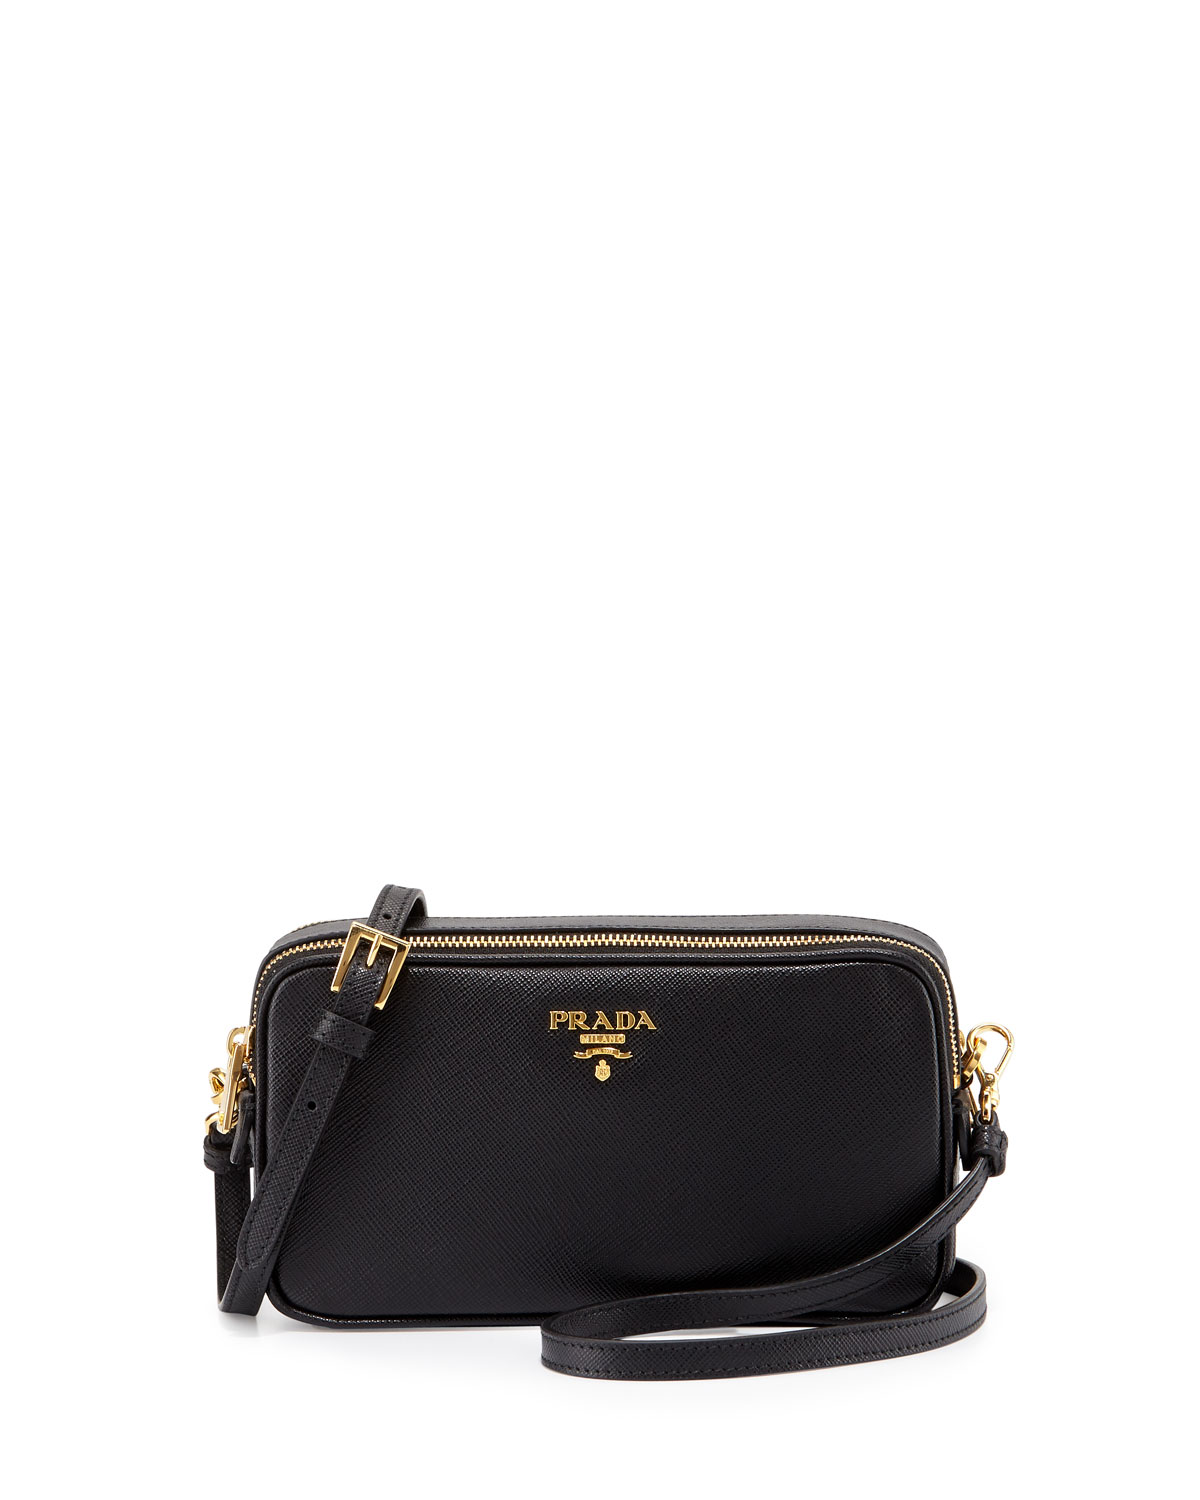 80272742f995 Prada Saffiano Mini Crossbody Bag, Black (Nero) | Neiman Marcus